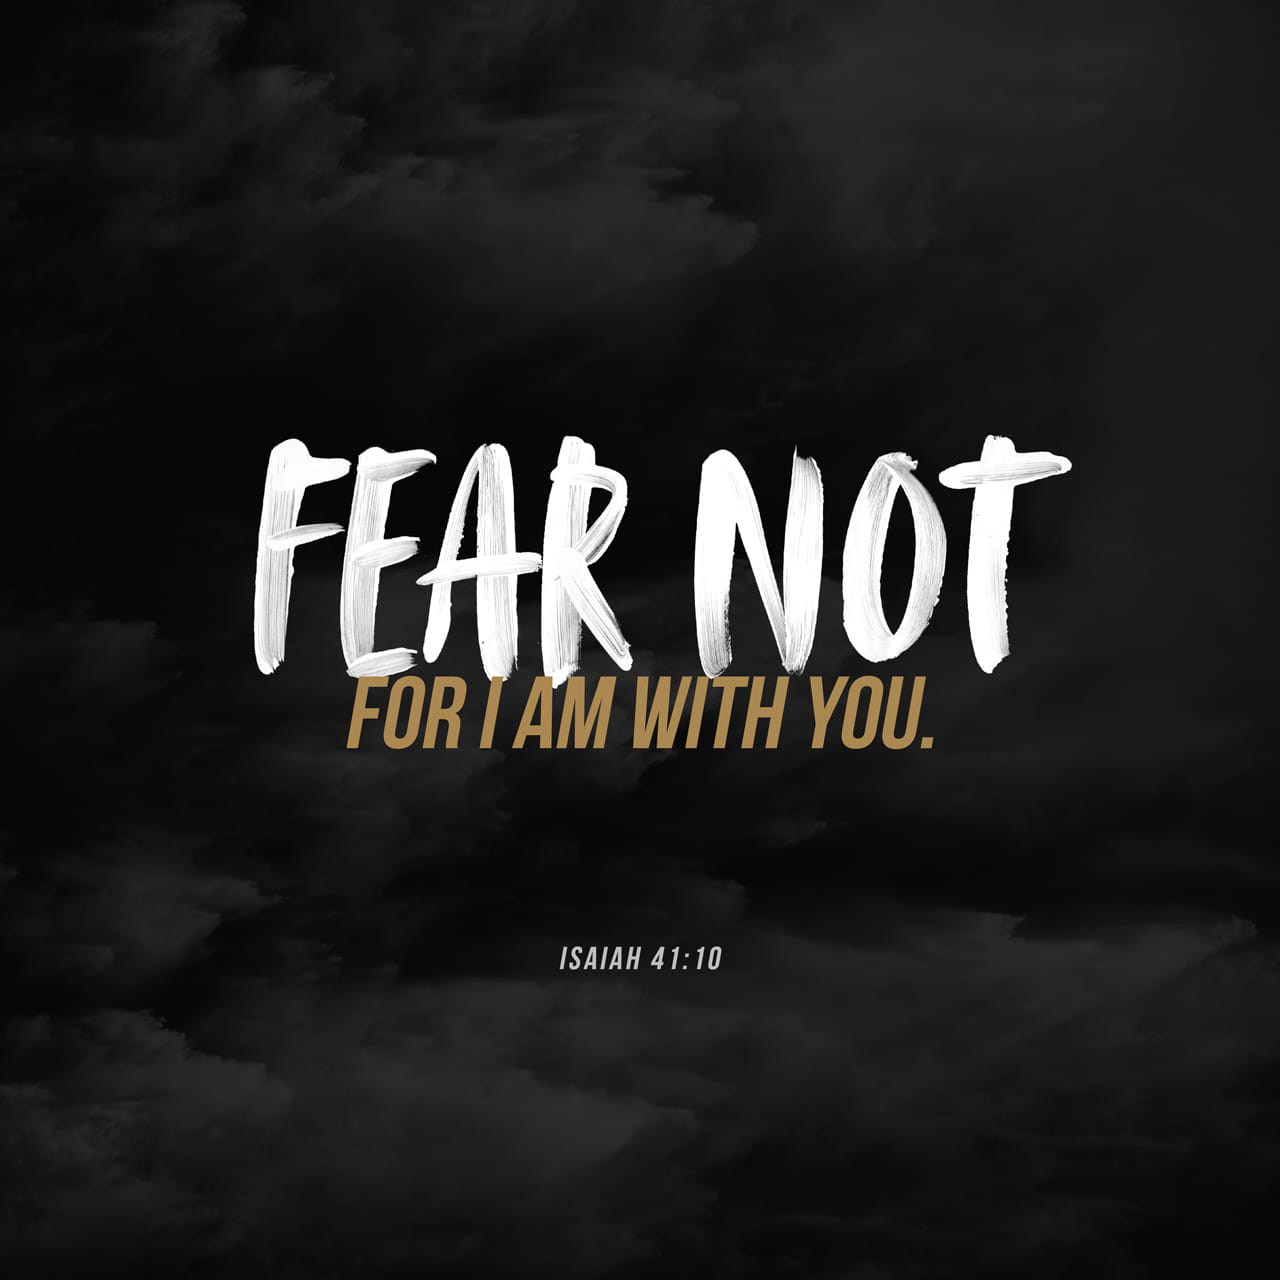 Isaiah 41:10 Do not be afraid — I am with you! I am your God — let nothing terrify you! I will make you strong and help you; I will protect you and save you.